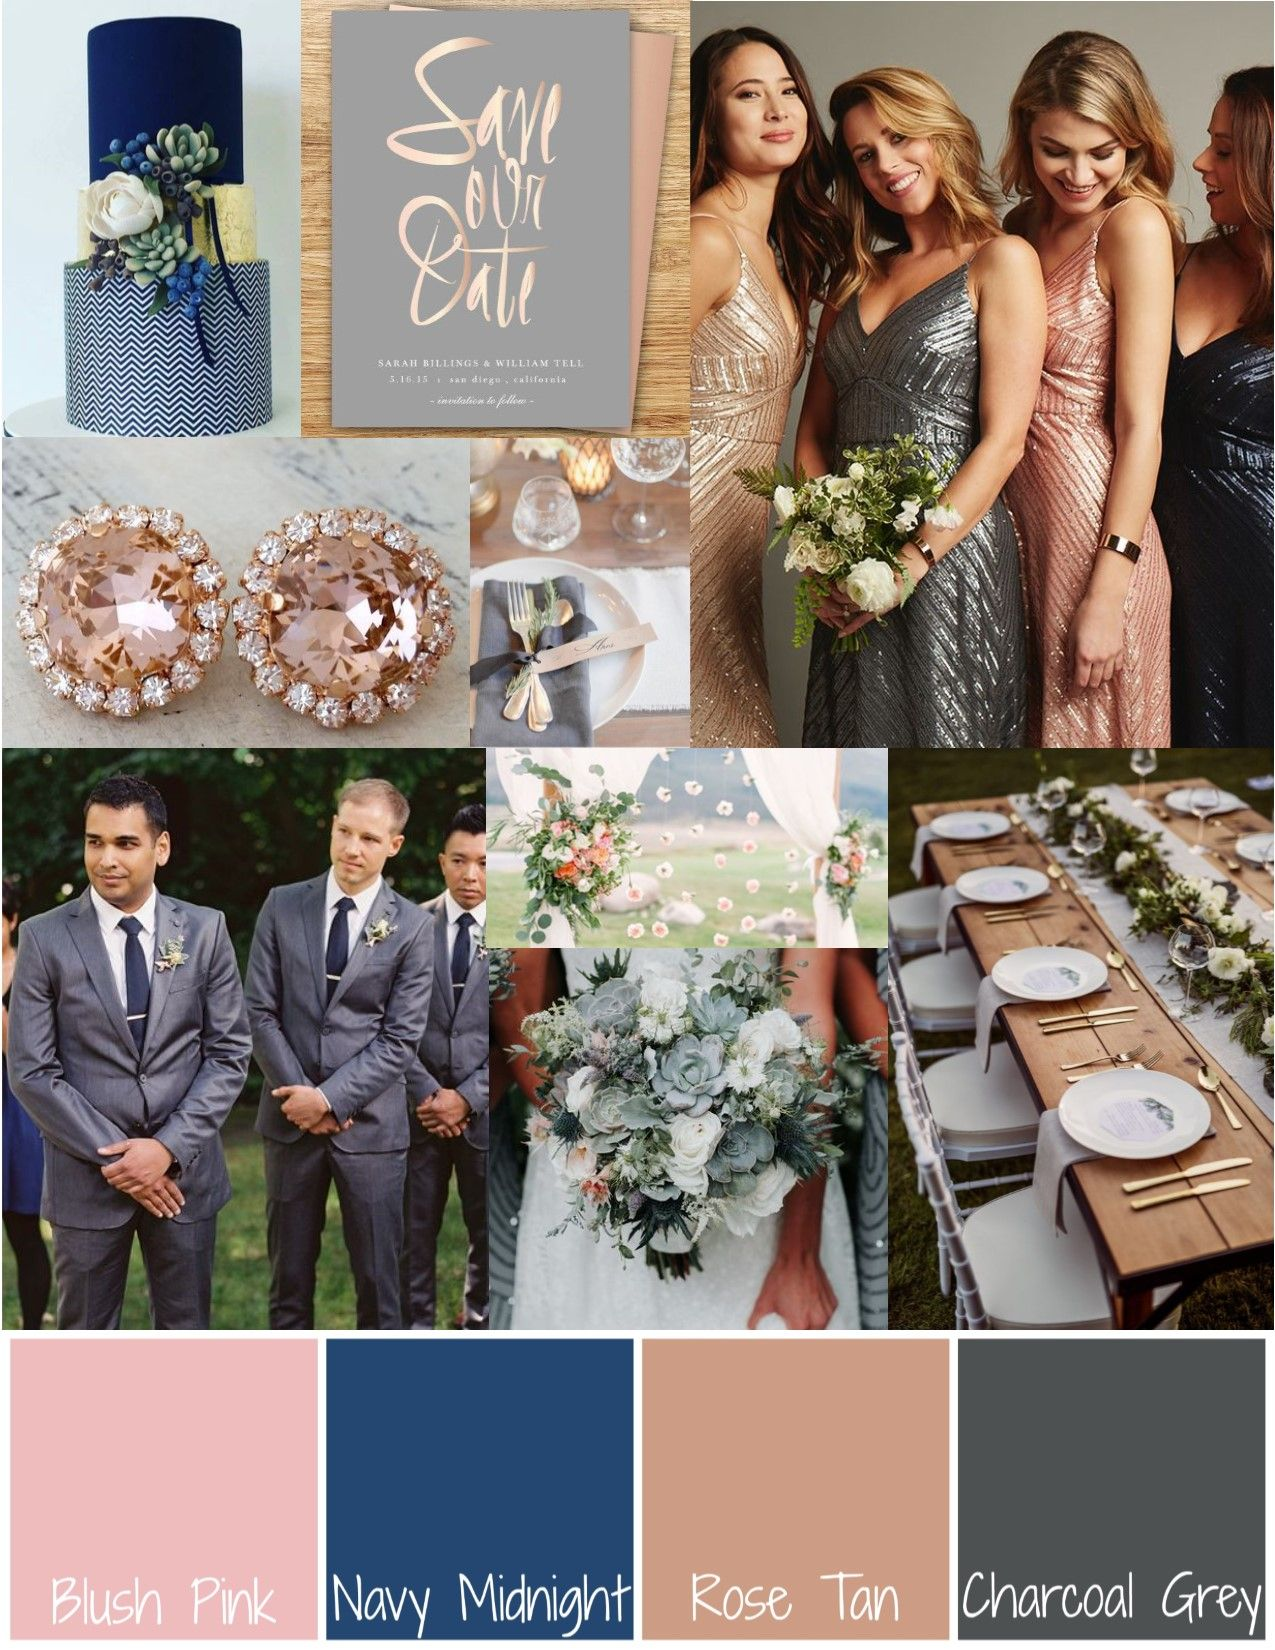 Hochzeit Farben Blush Pink Navy Blue Rose Gold And Charcoal Grey